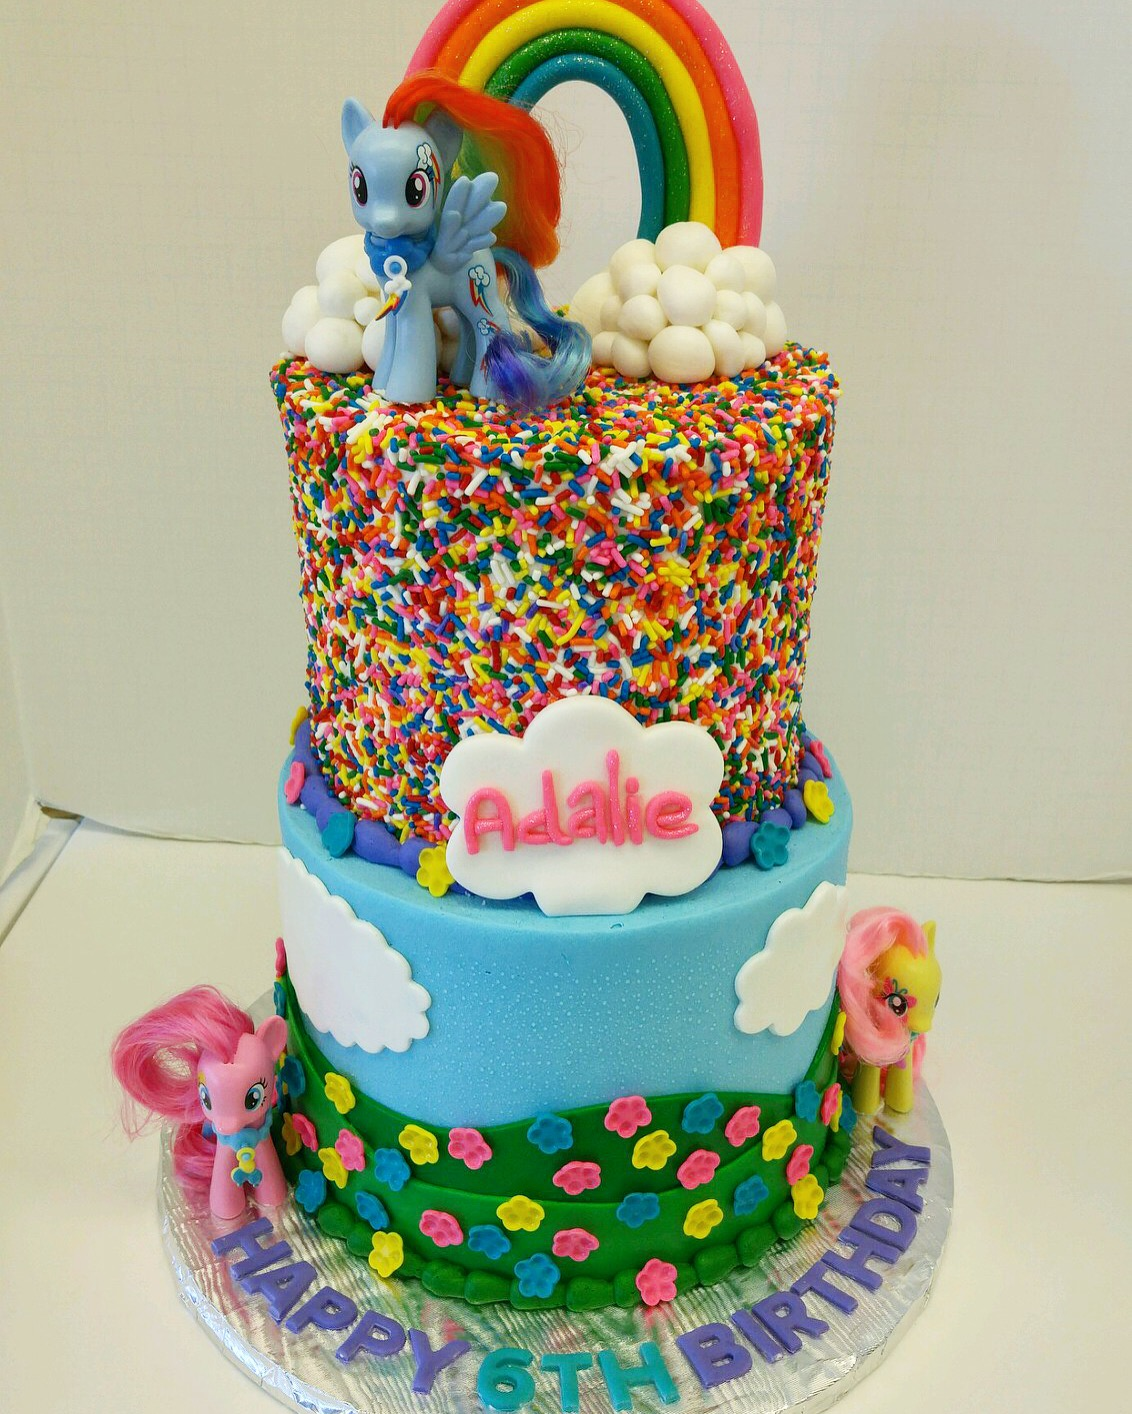 Two Tiered My Little Pony Cake Buttercream With Fondant Decor And Sprinkle Covering